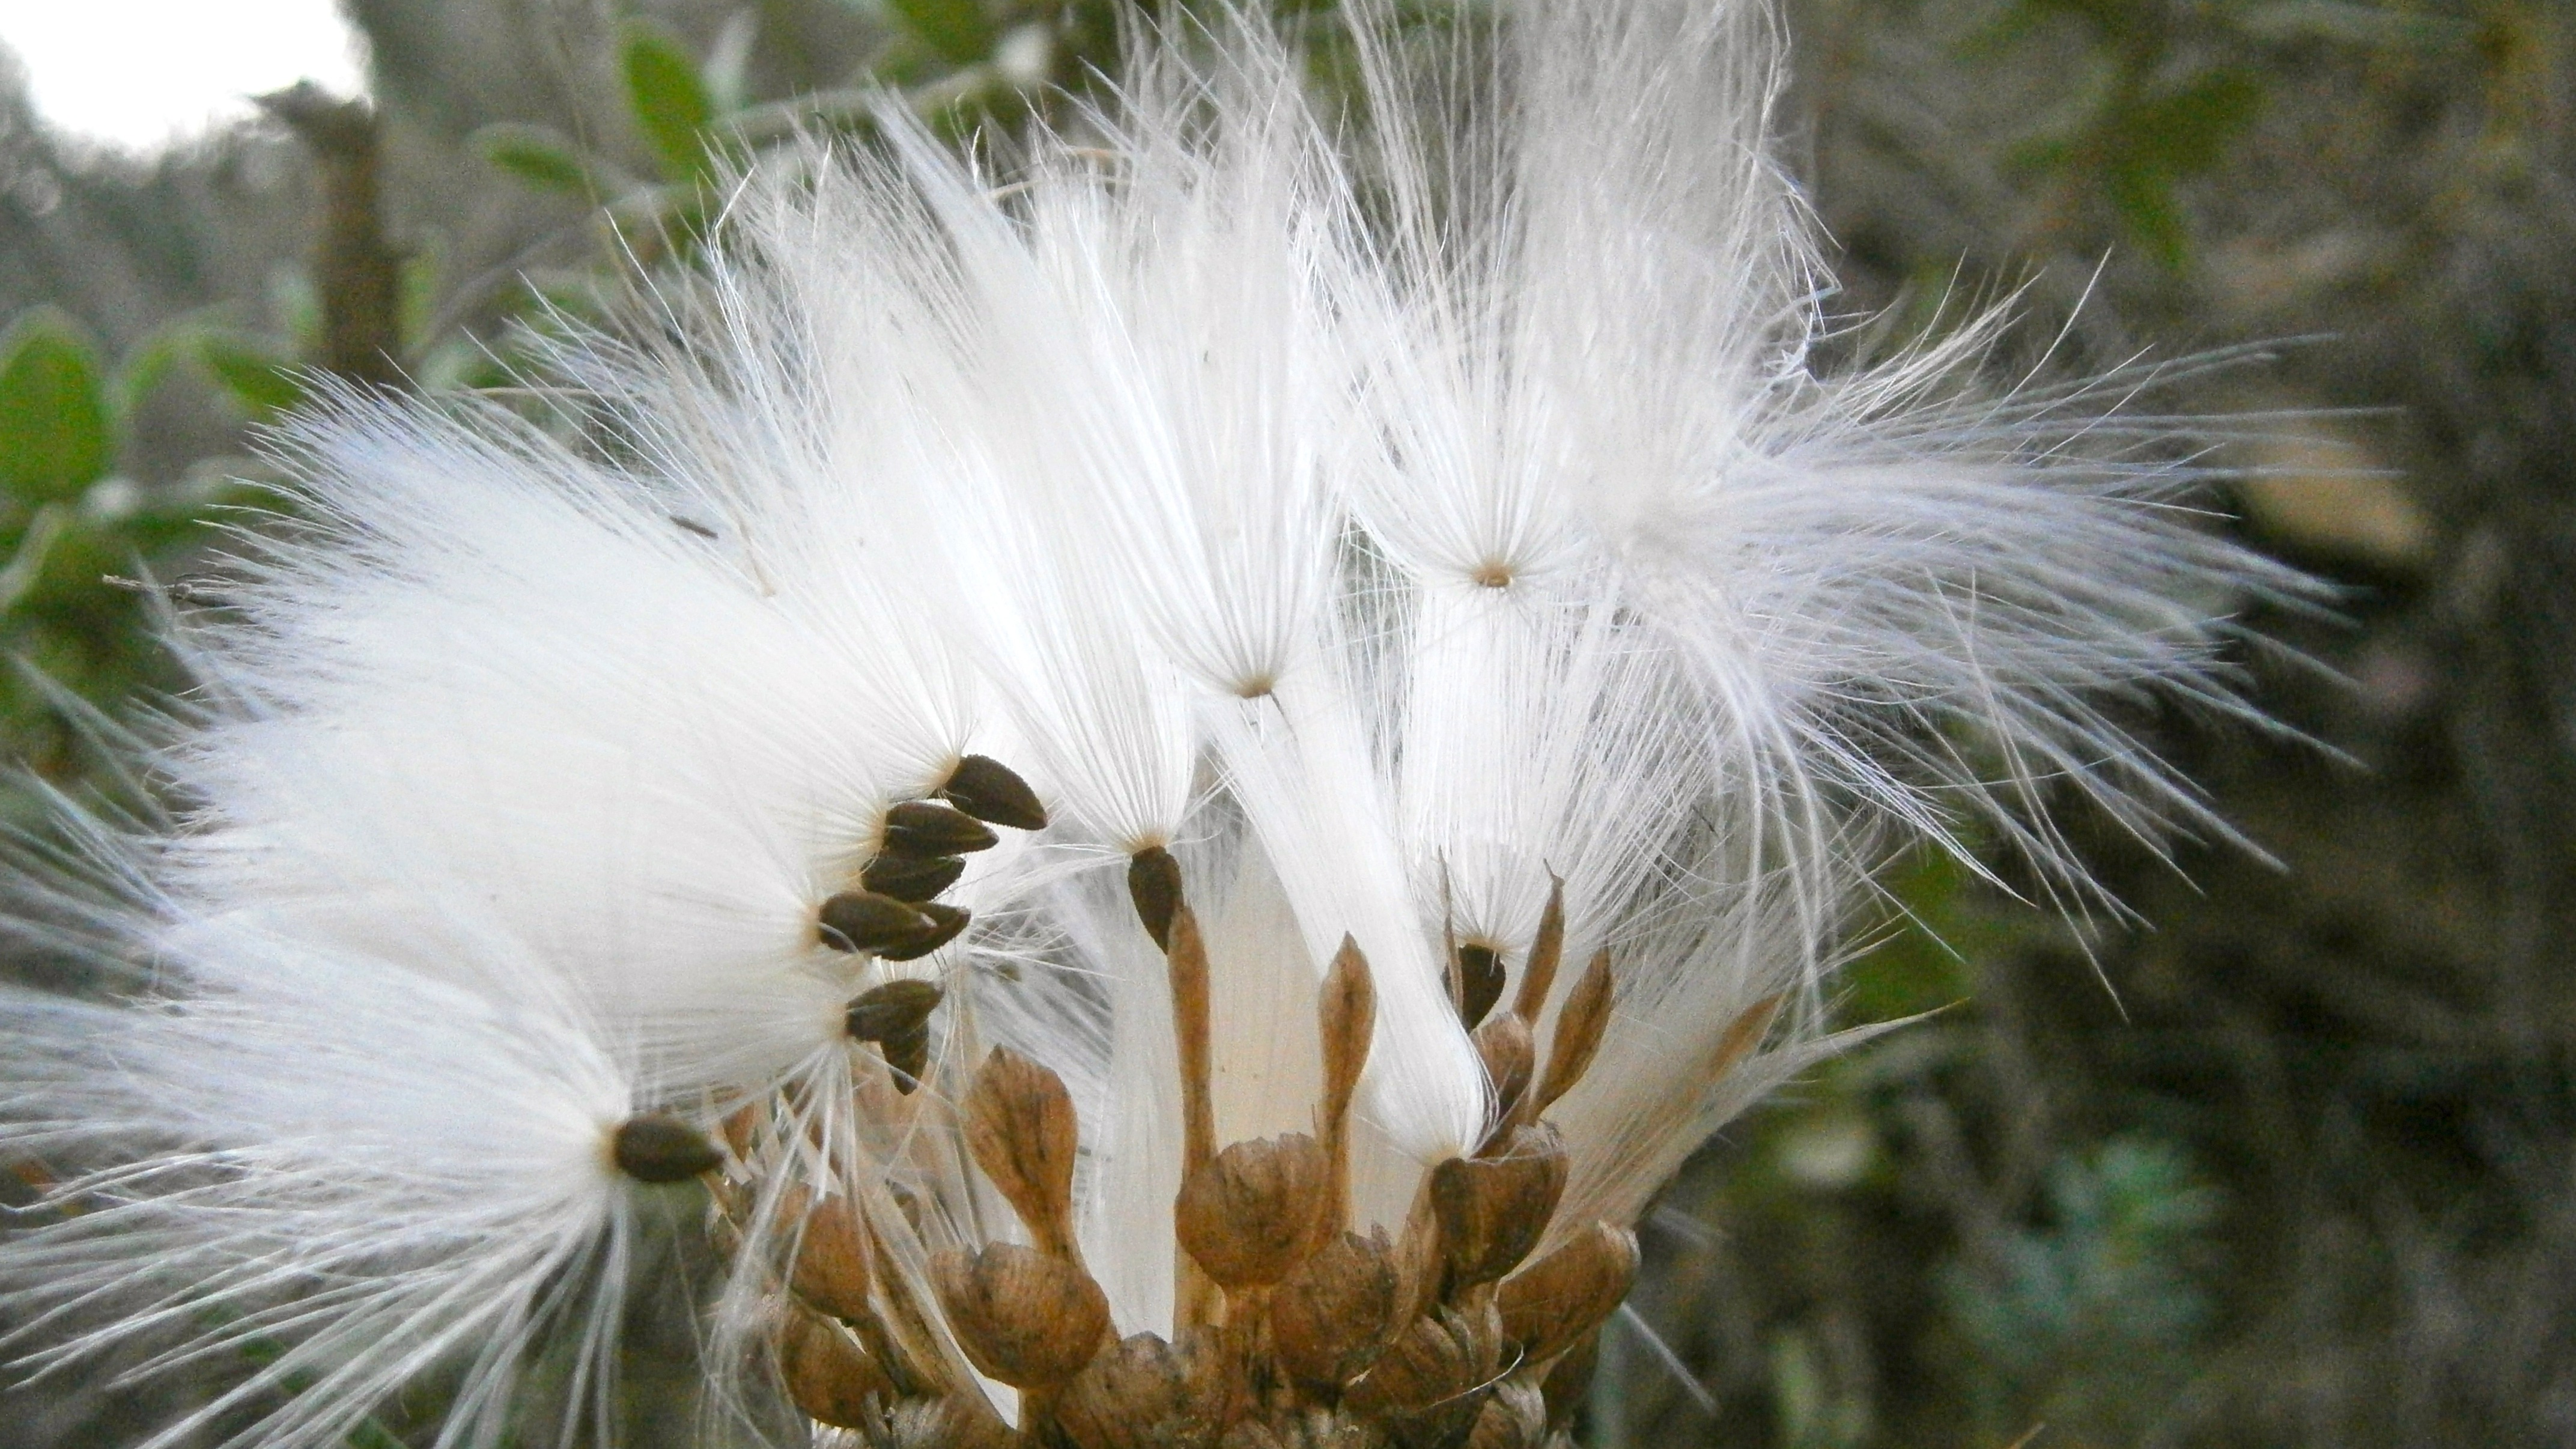 Fluffy White Thistle Flower Free Image